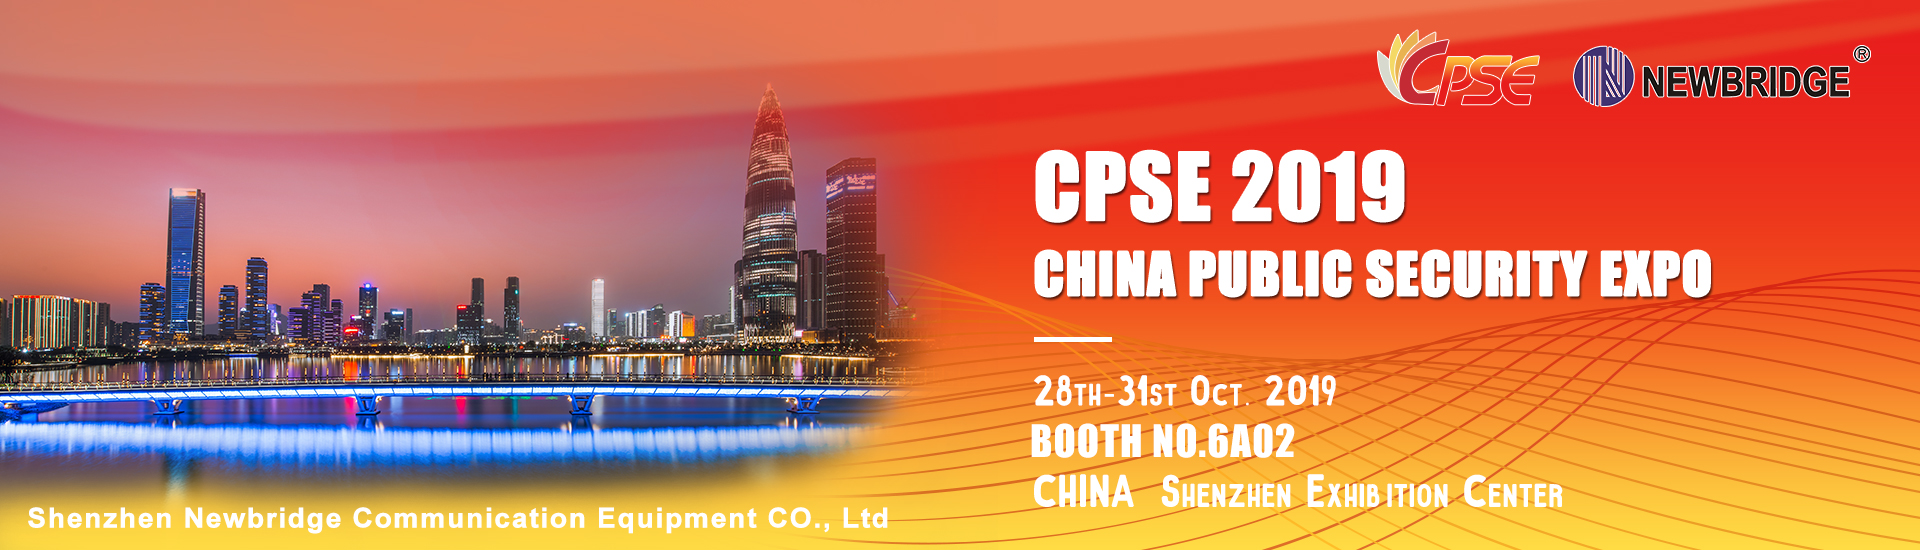 We will attend the CPSE(CHINA PUBLIC SECURITY EXP